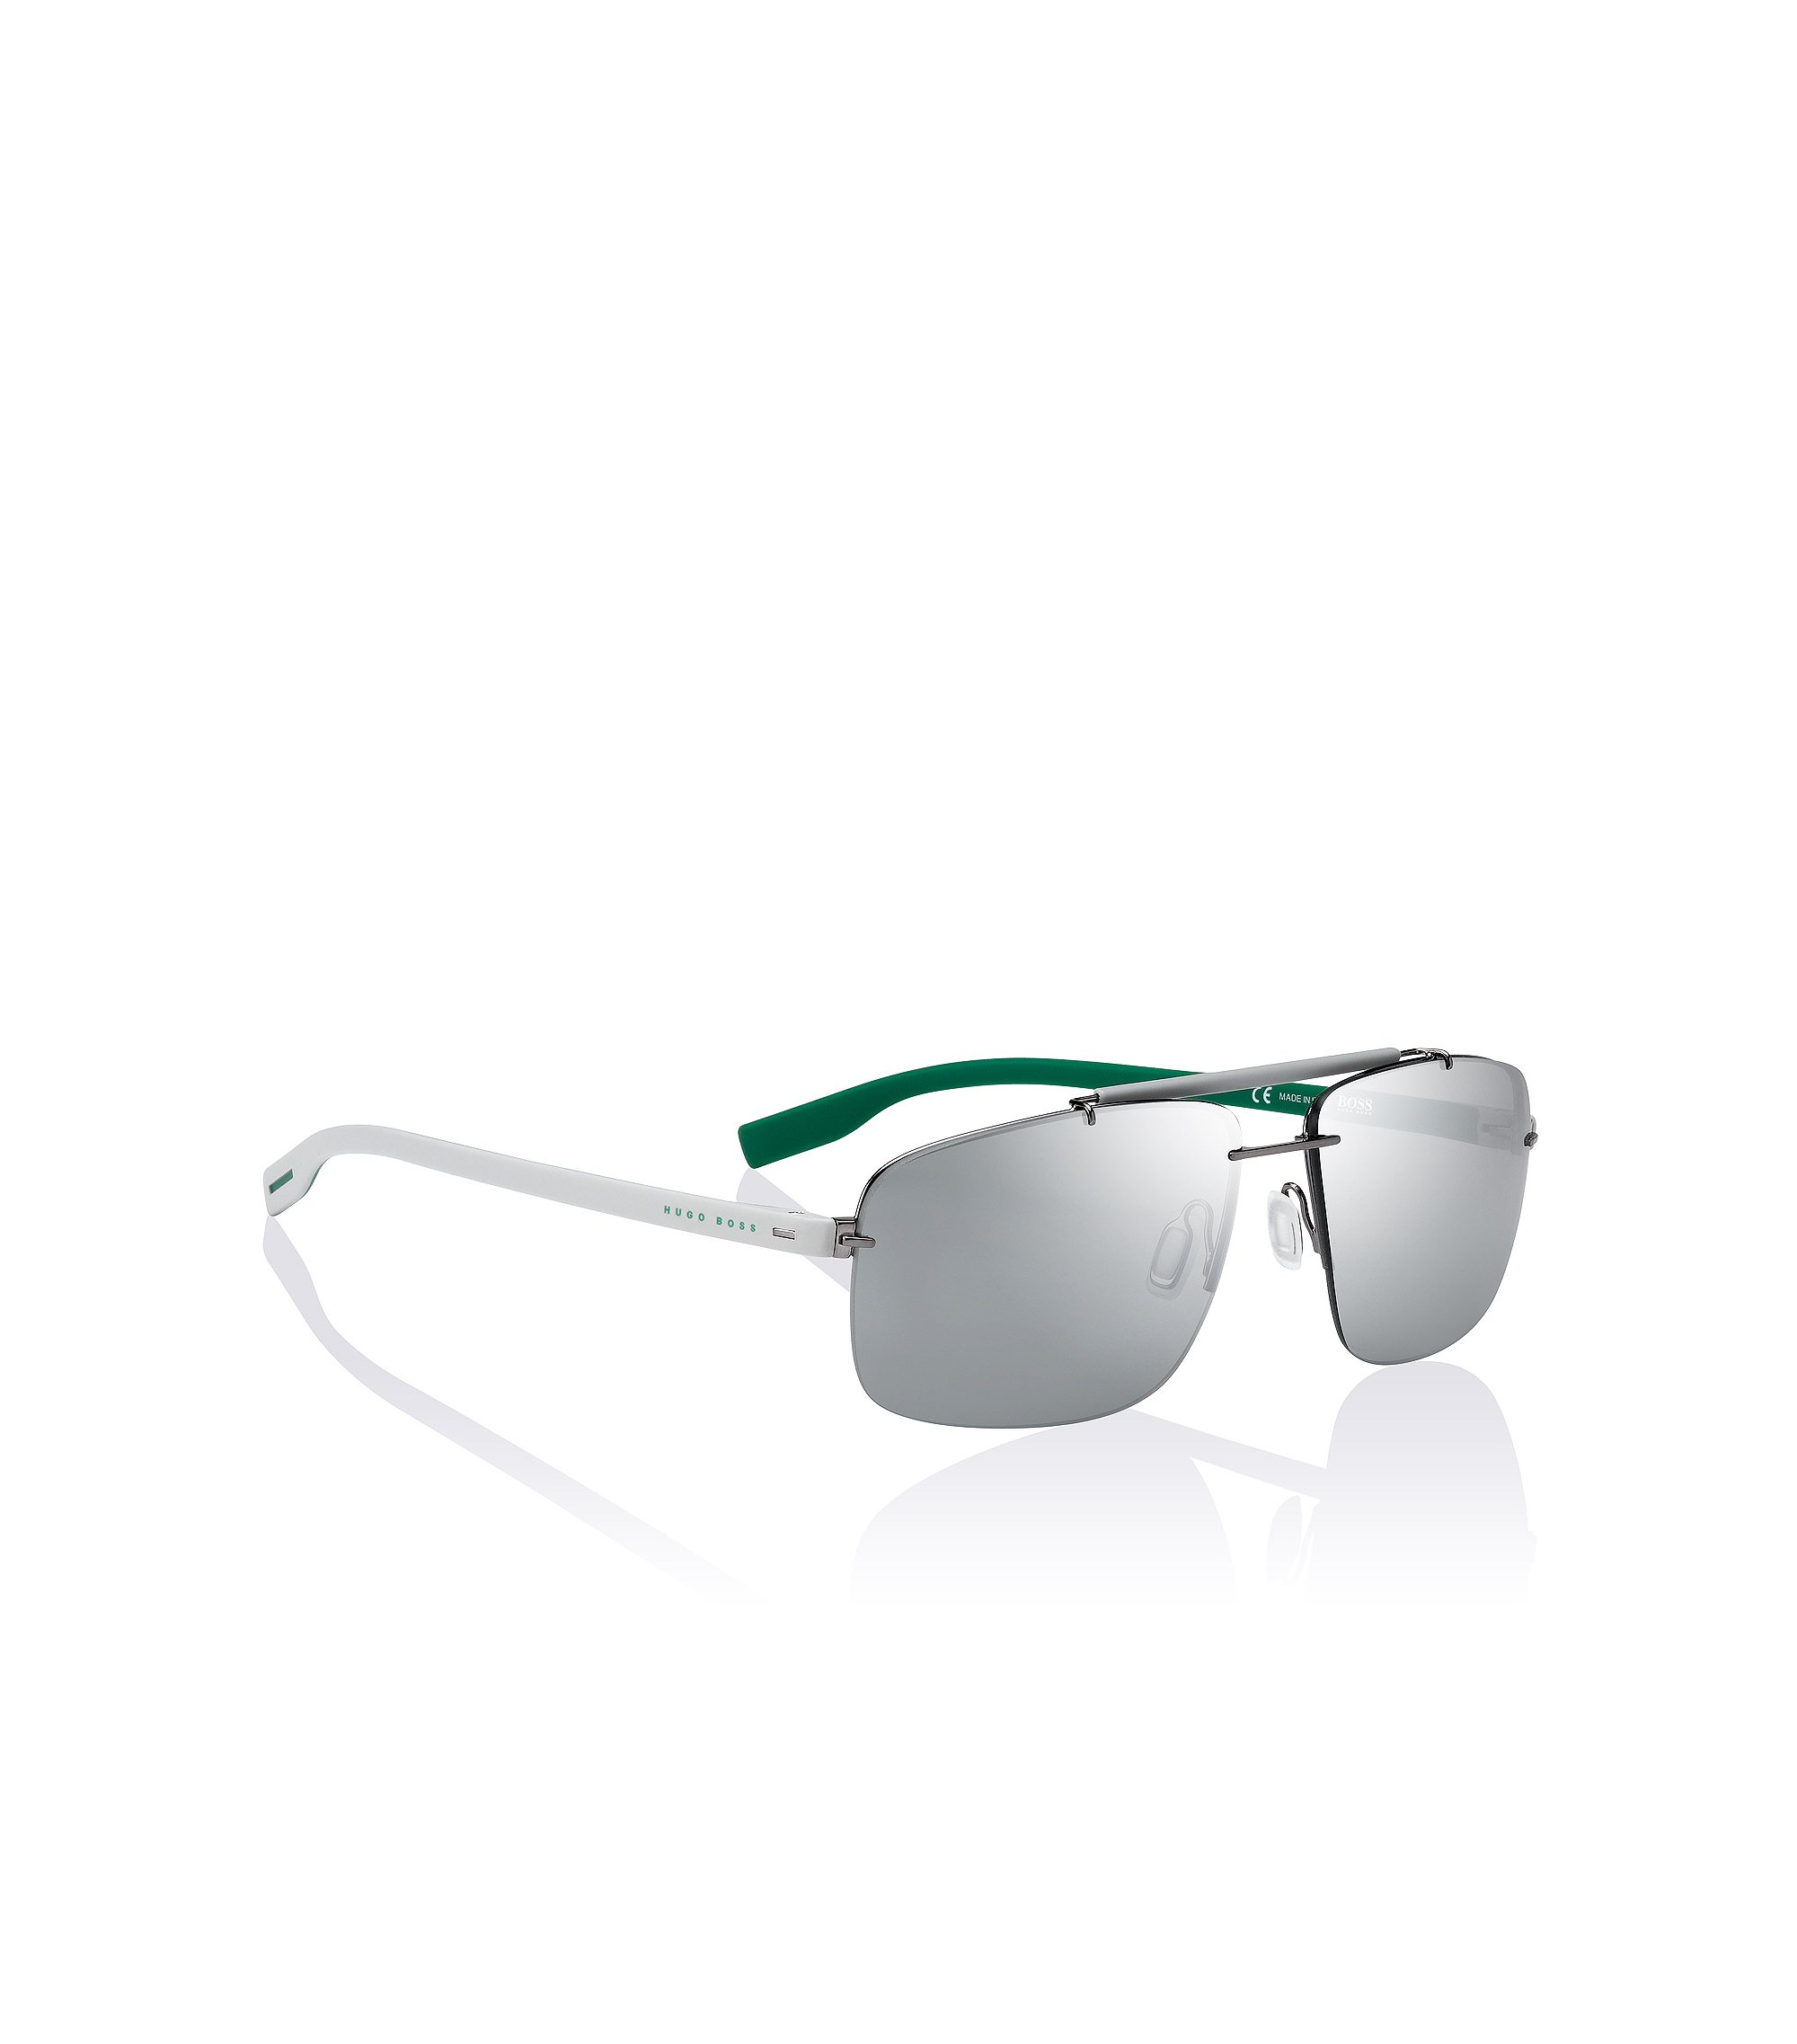 Sonnenbrille im Two-Tone-Dessin: ´BOSS 0608`, Assorted-Pre-Pack